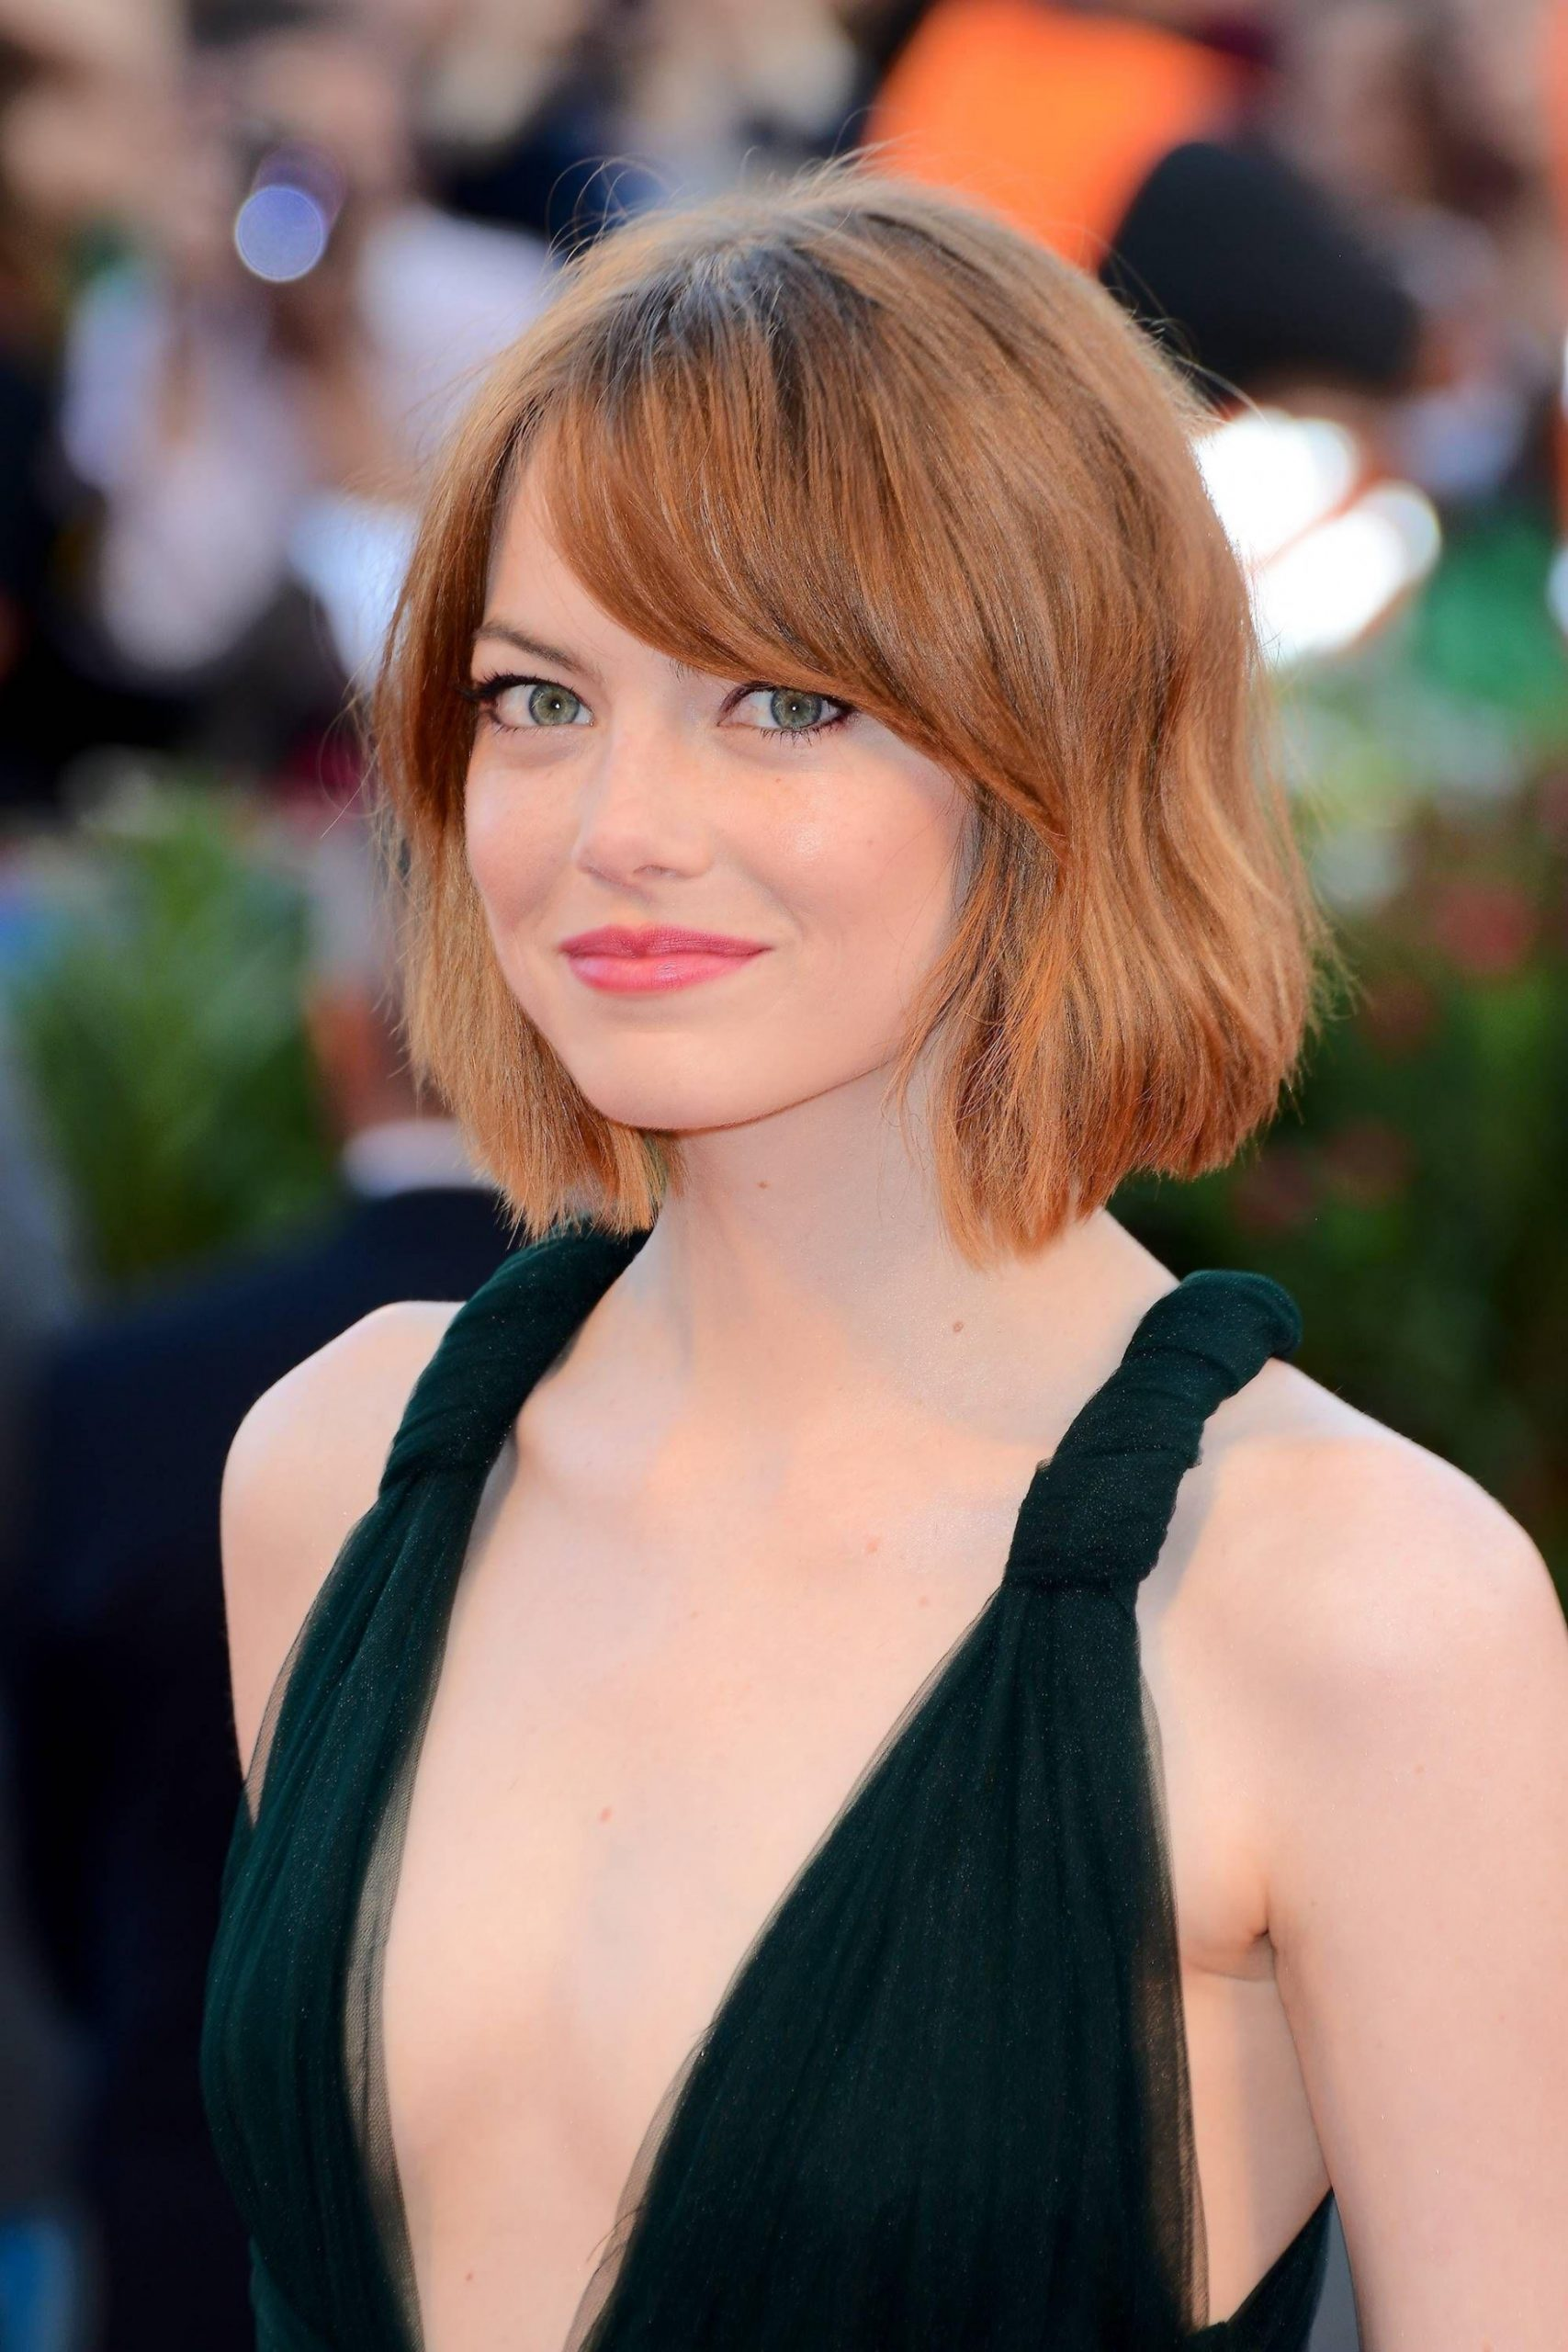 11 Flattering Ways To Pull Off Bangs For Round Face Shapes Types Of Bangs For Round Faces